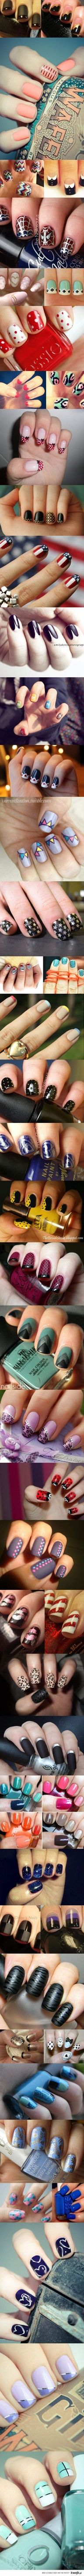 Nails Designs Beginners UV Gel Nail with a Tip and Overlay